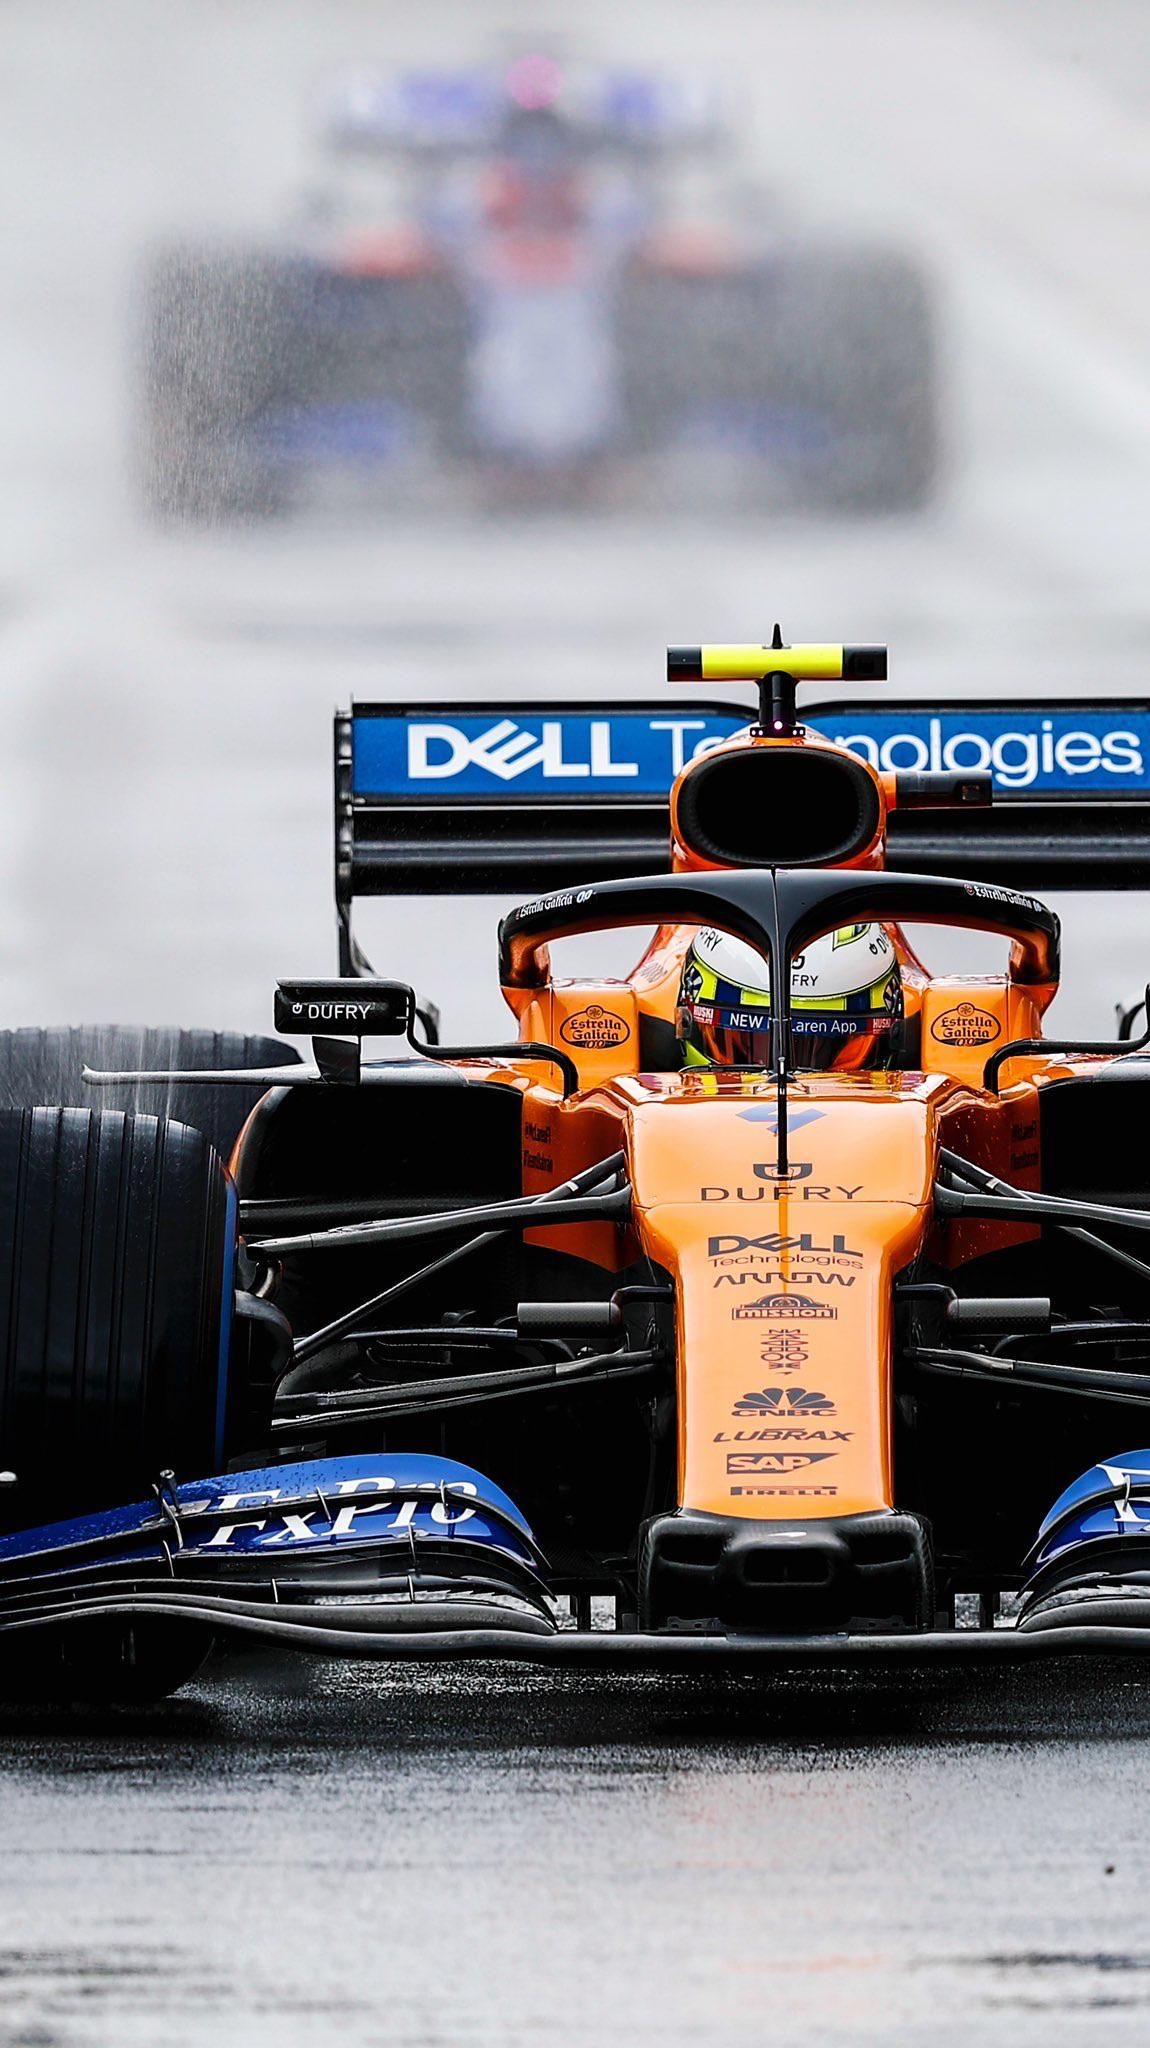 I Hope Next Year S Mclaren Livery Is As Good As If Not Better Than The Current Season S Interlagos From Lando S Twitter Evmore Electric Vehichle Mclaren Formula 1 Formula 1 Car Formula 1